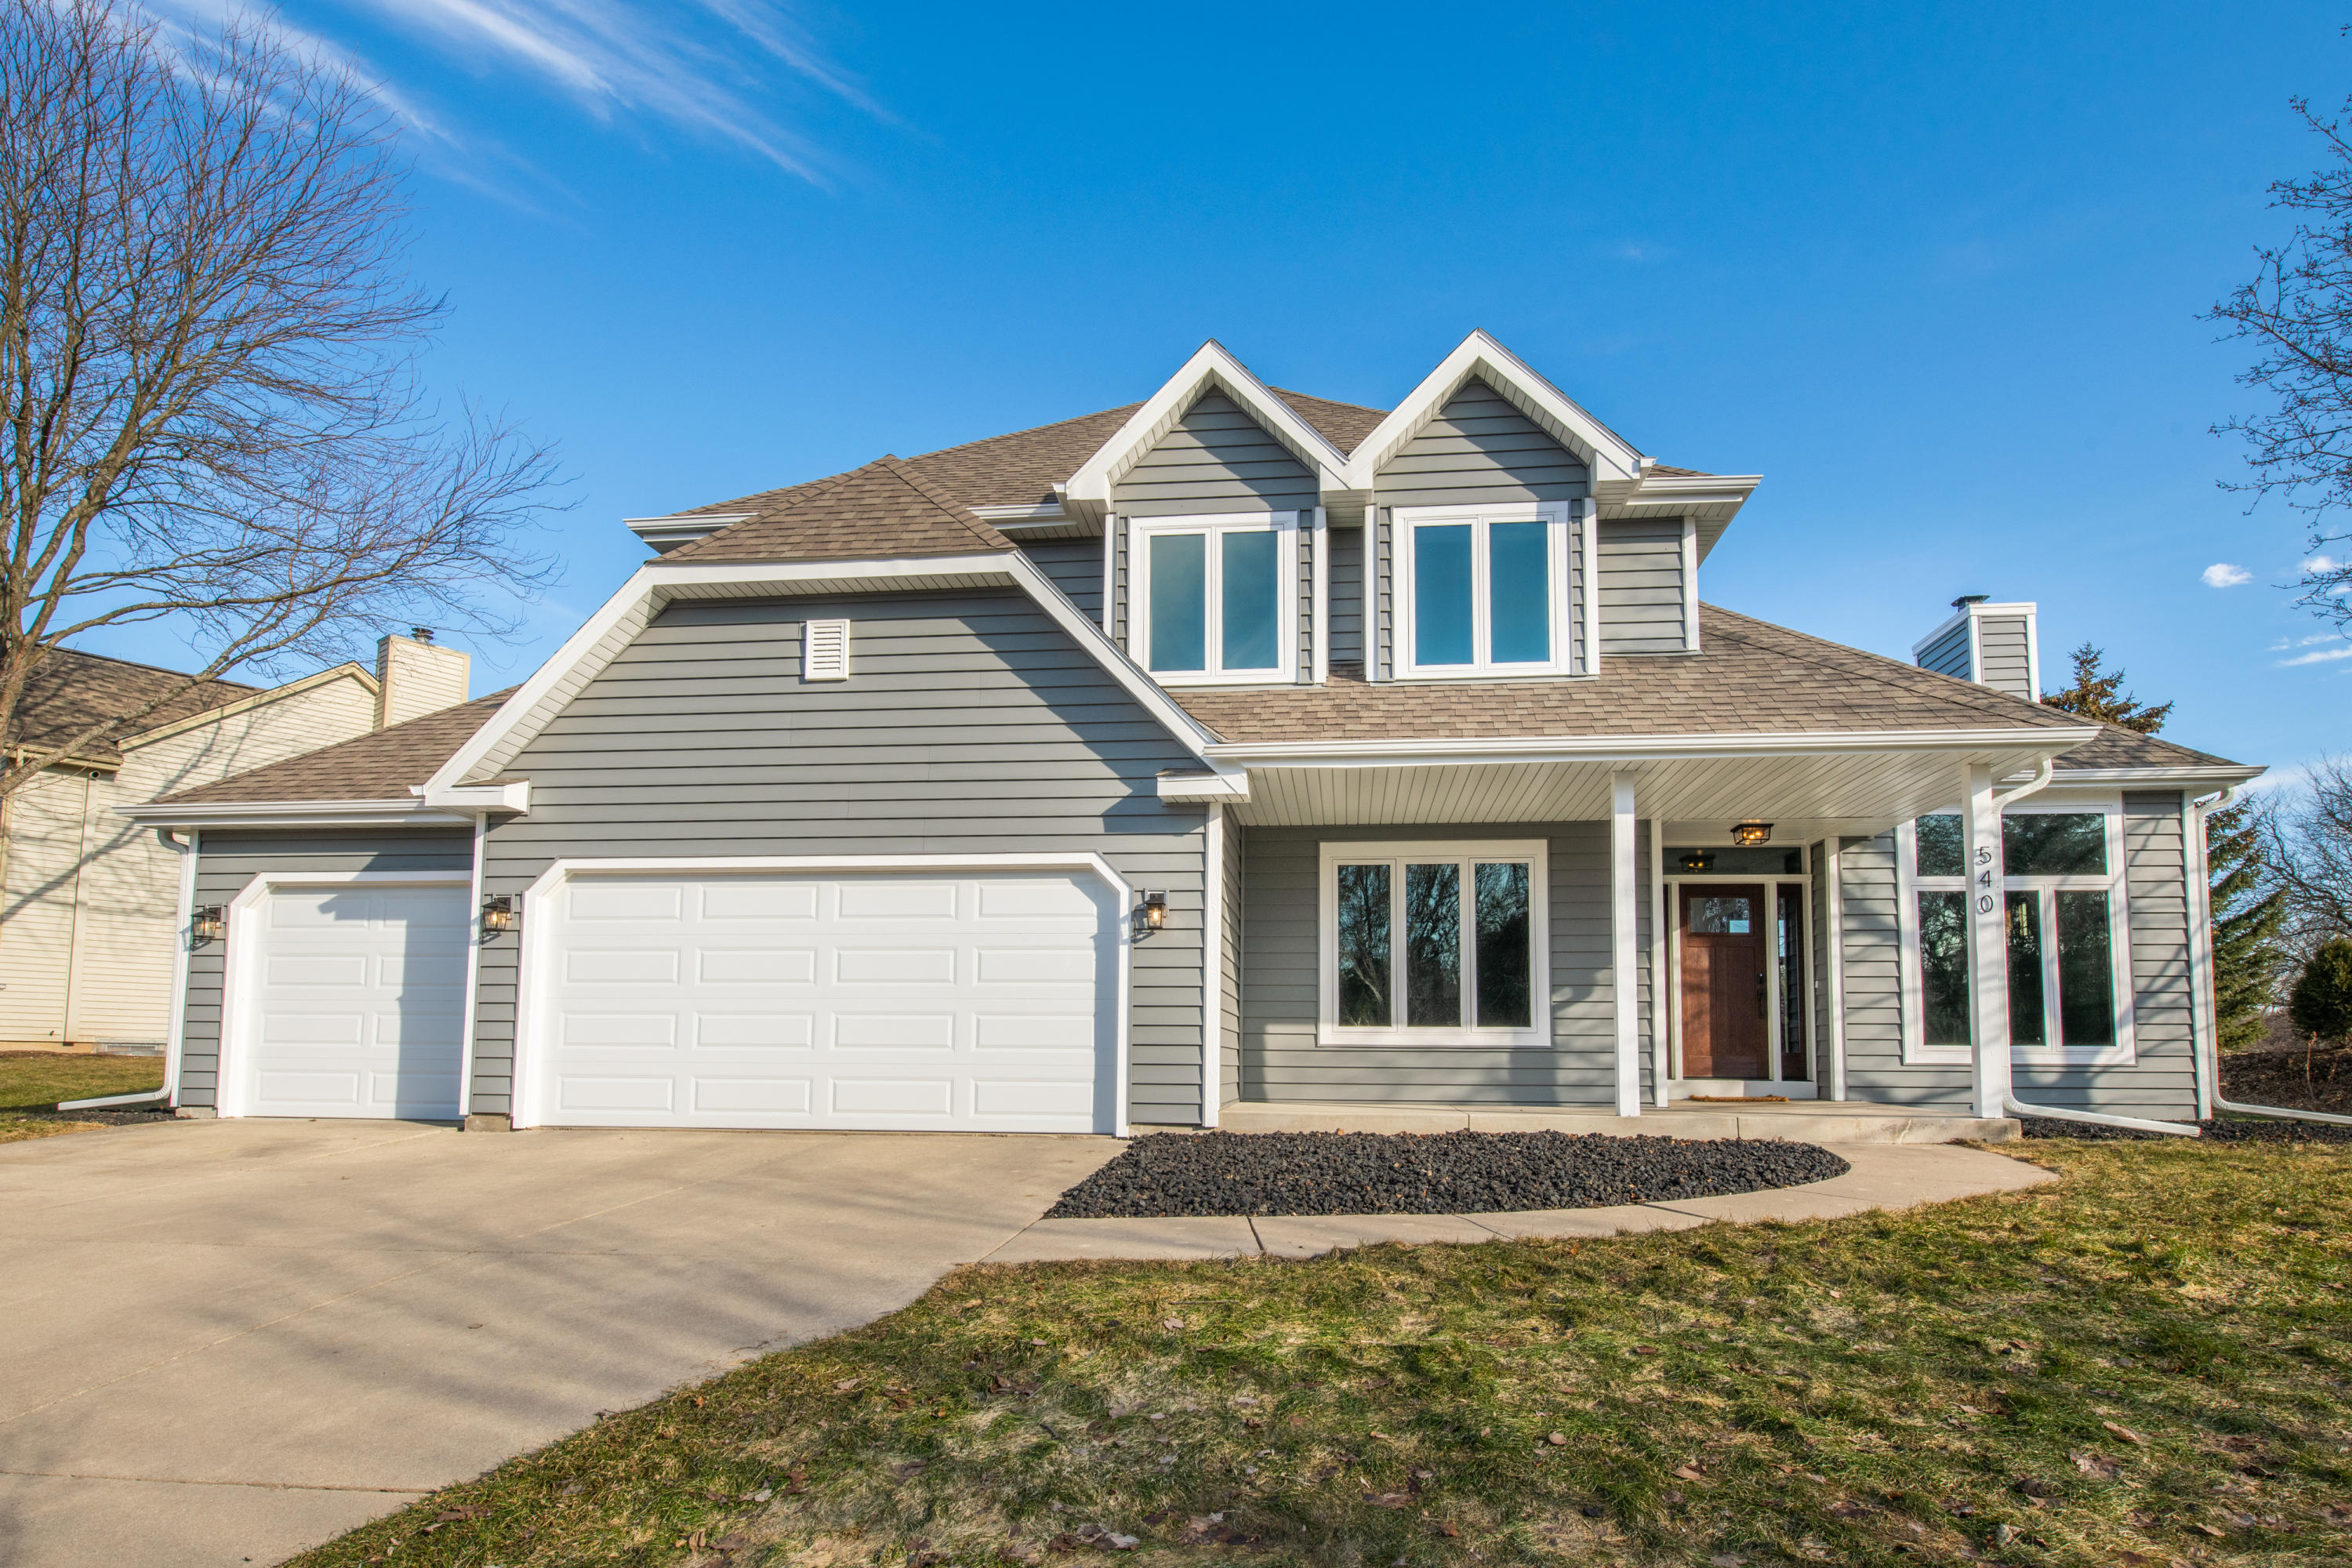 540 Rae Dr, Hartland, Wisconsin 53029, 3 Bedrooms Bedrooms, 8 Rooms Rooms,2 BathroomsBathrooms,Single-Family,For Sale,Rae Dr,1679374